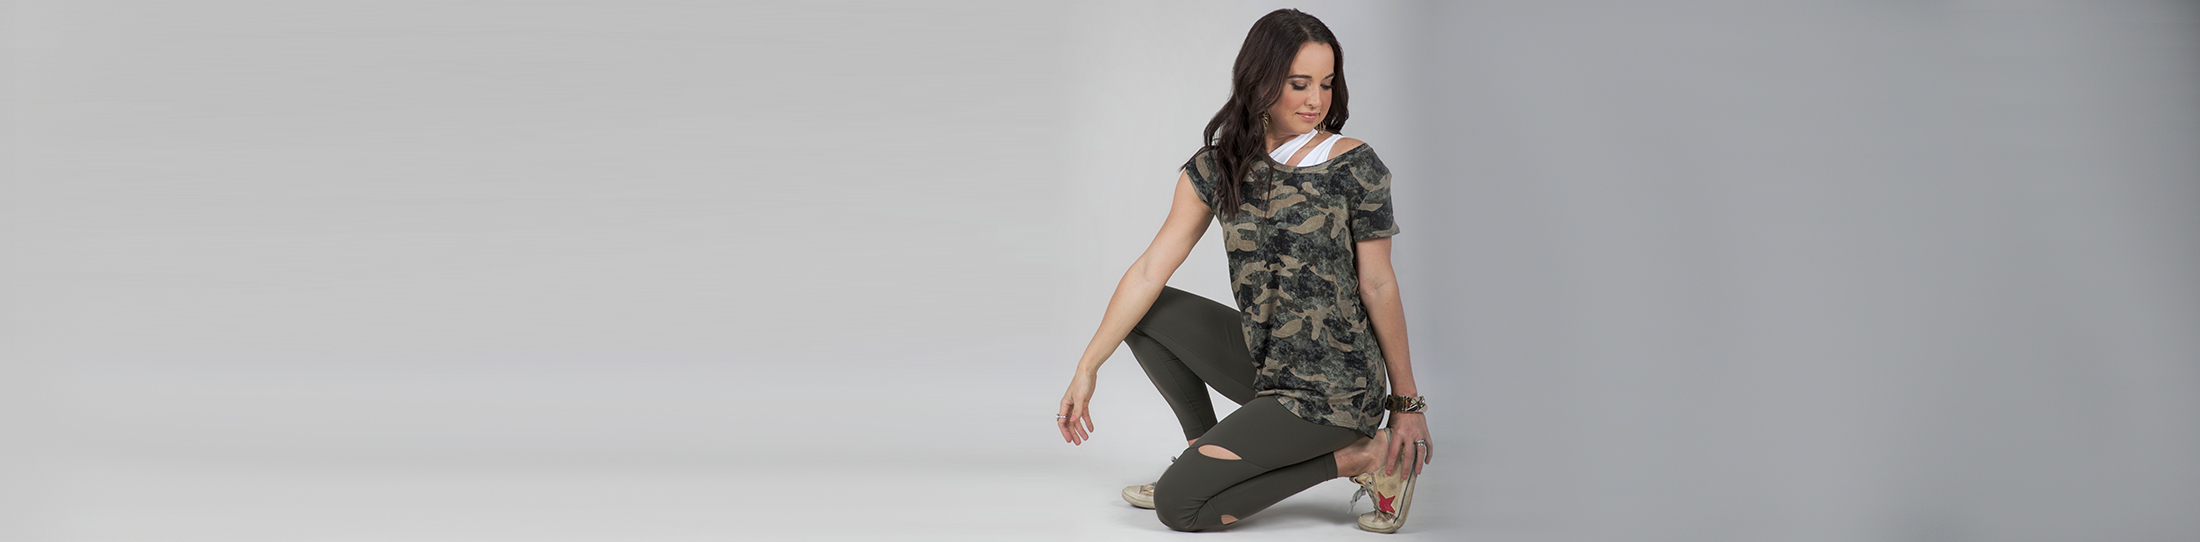 product-category-banner-tiffany-yoga-outfits.jpg